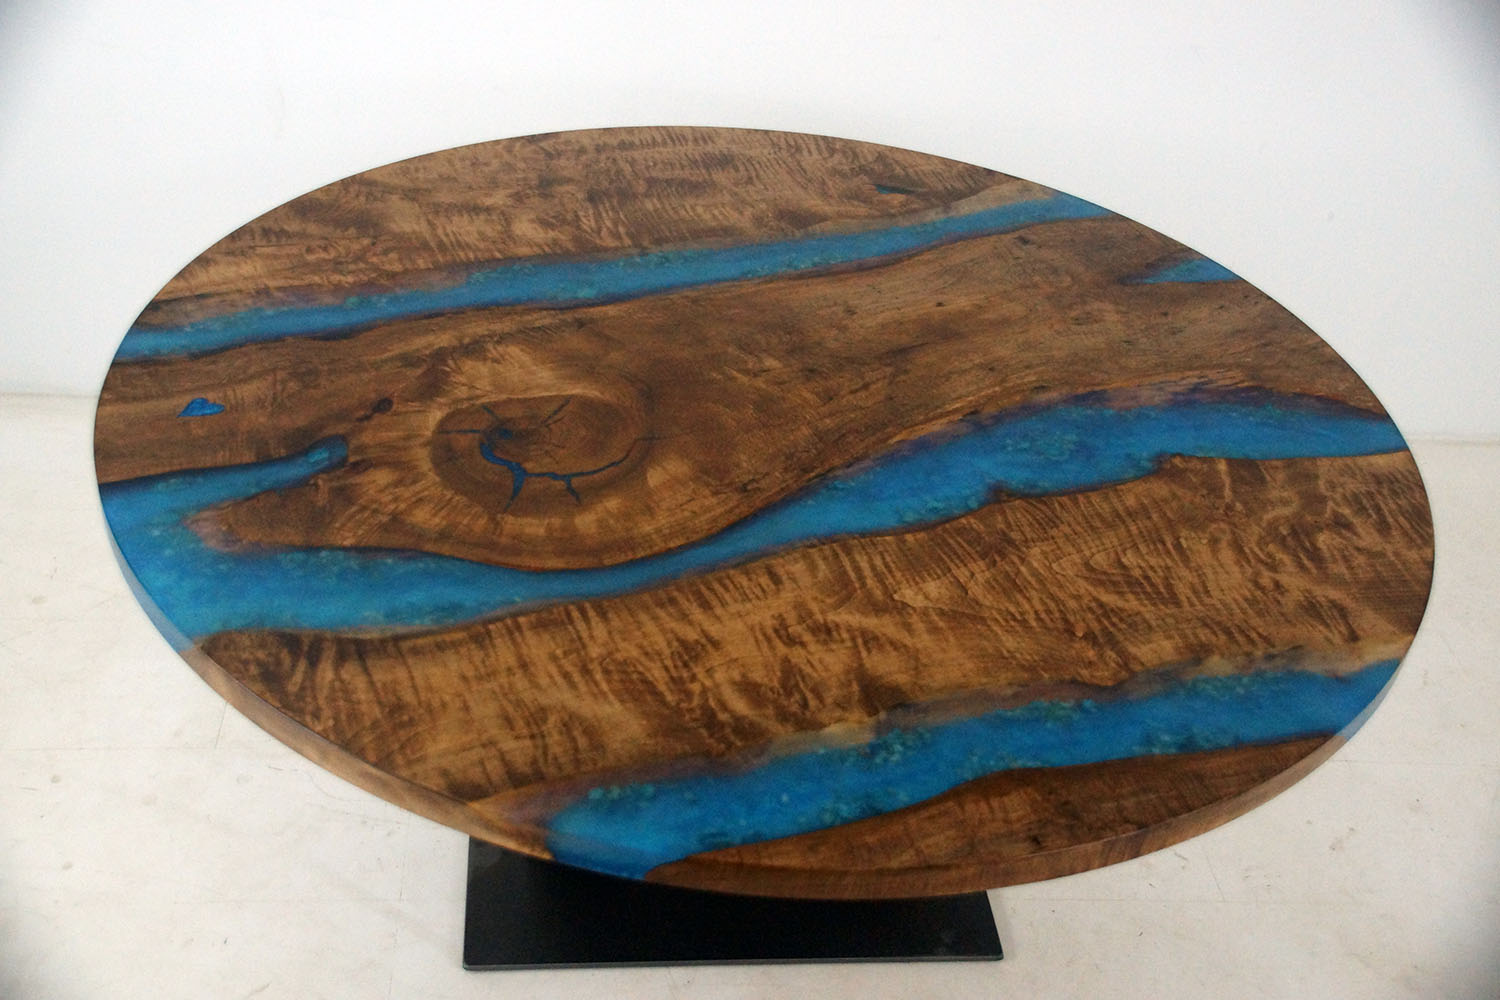 Stained Maple Round Table With Blue Resin And Stones